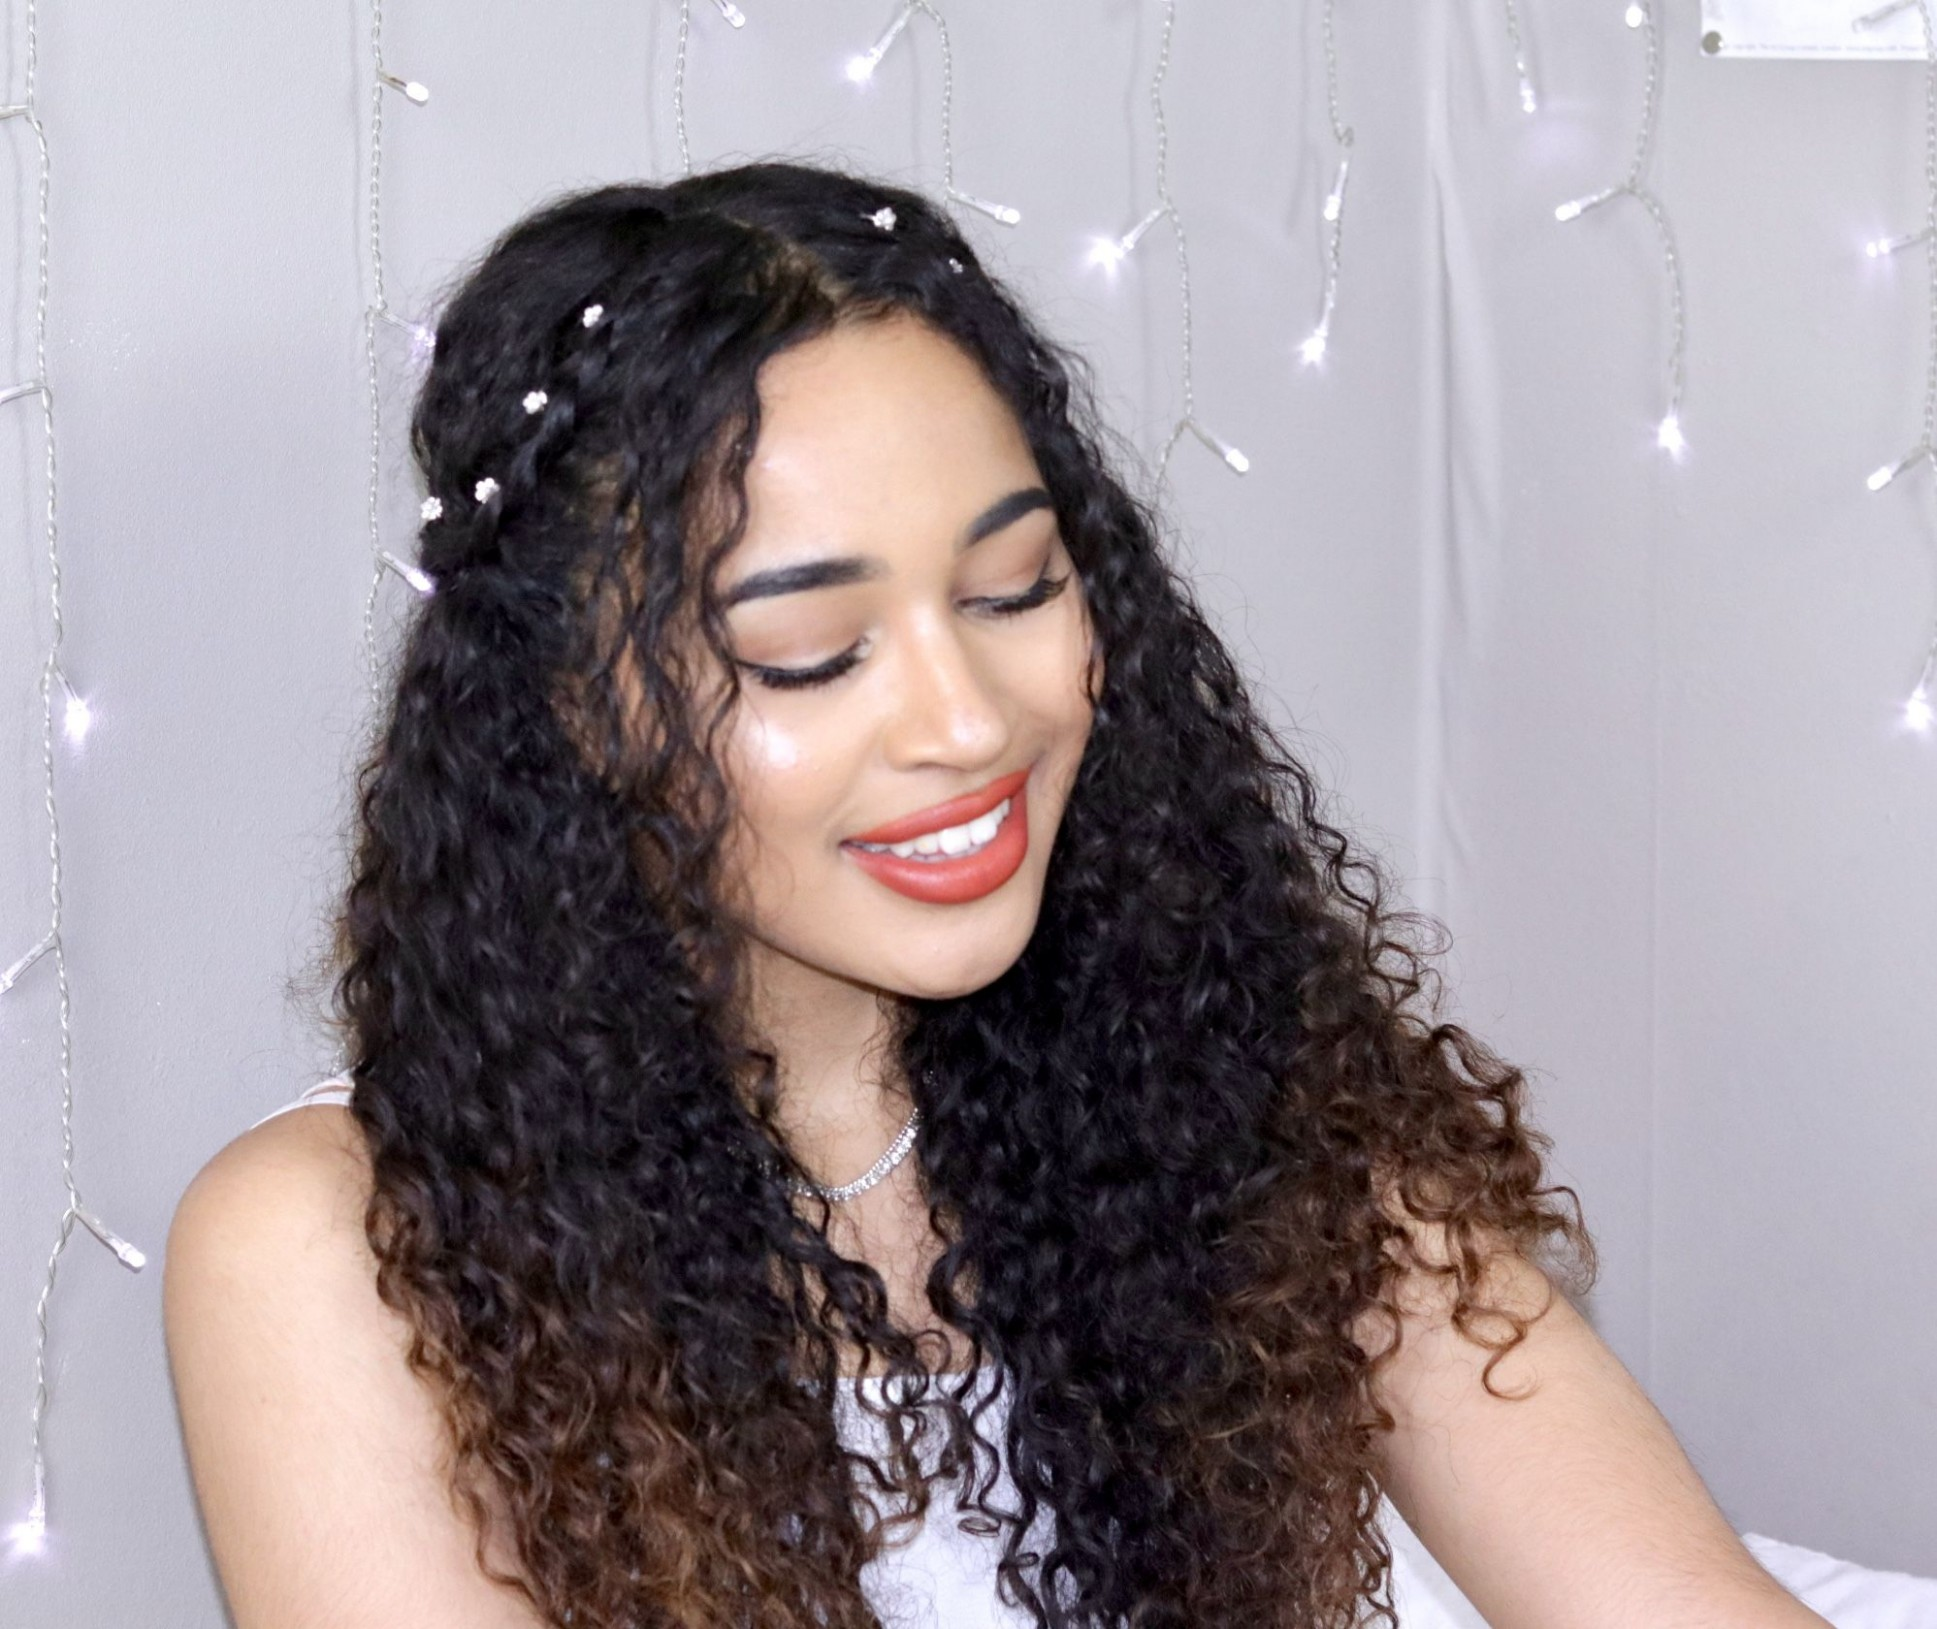 Boho Curly Hairstyles For Prom, Weddings, Graduation, Parties Graduation Hairstyles For Curly Hair